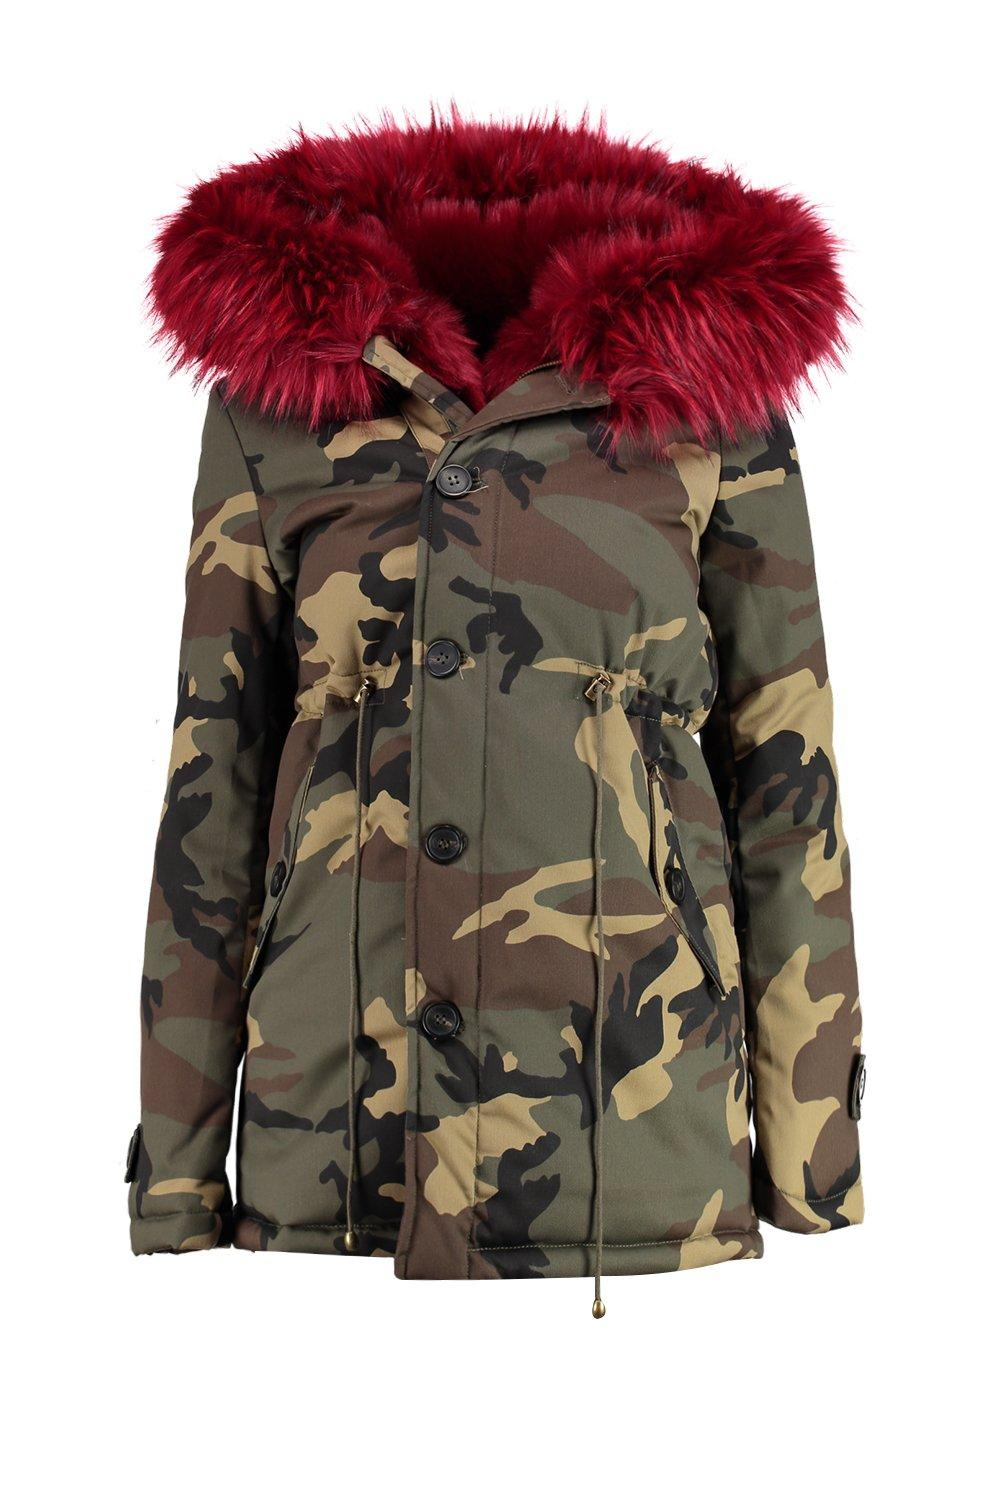 Discover men's parka coats and parka jackets at ASOS. From black parkas, camo parkas and fur lined parkas to hooded and waterproof parka jackets. Shop now.